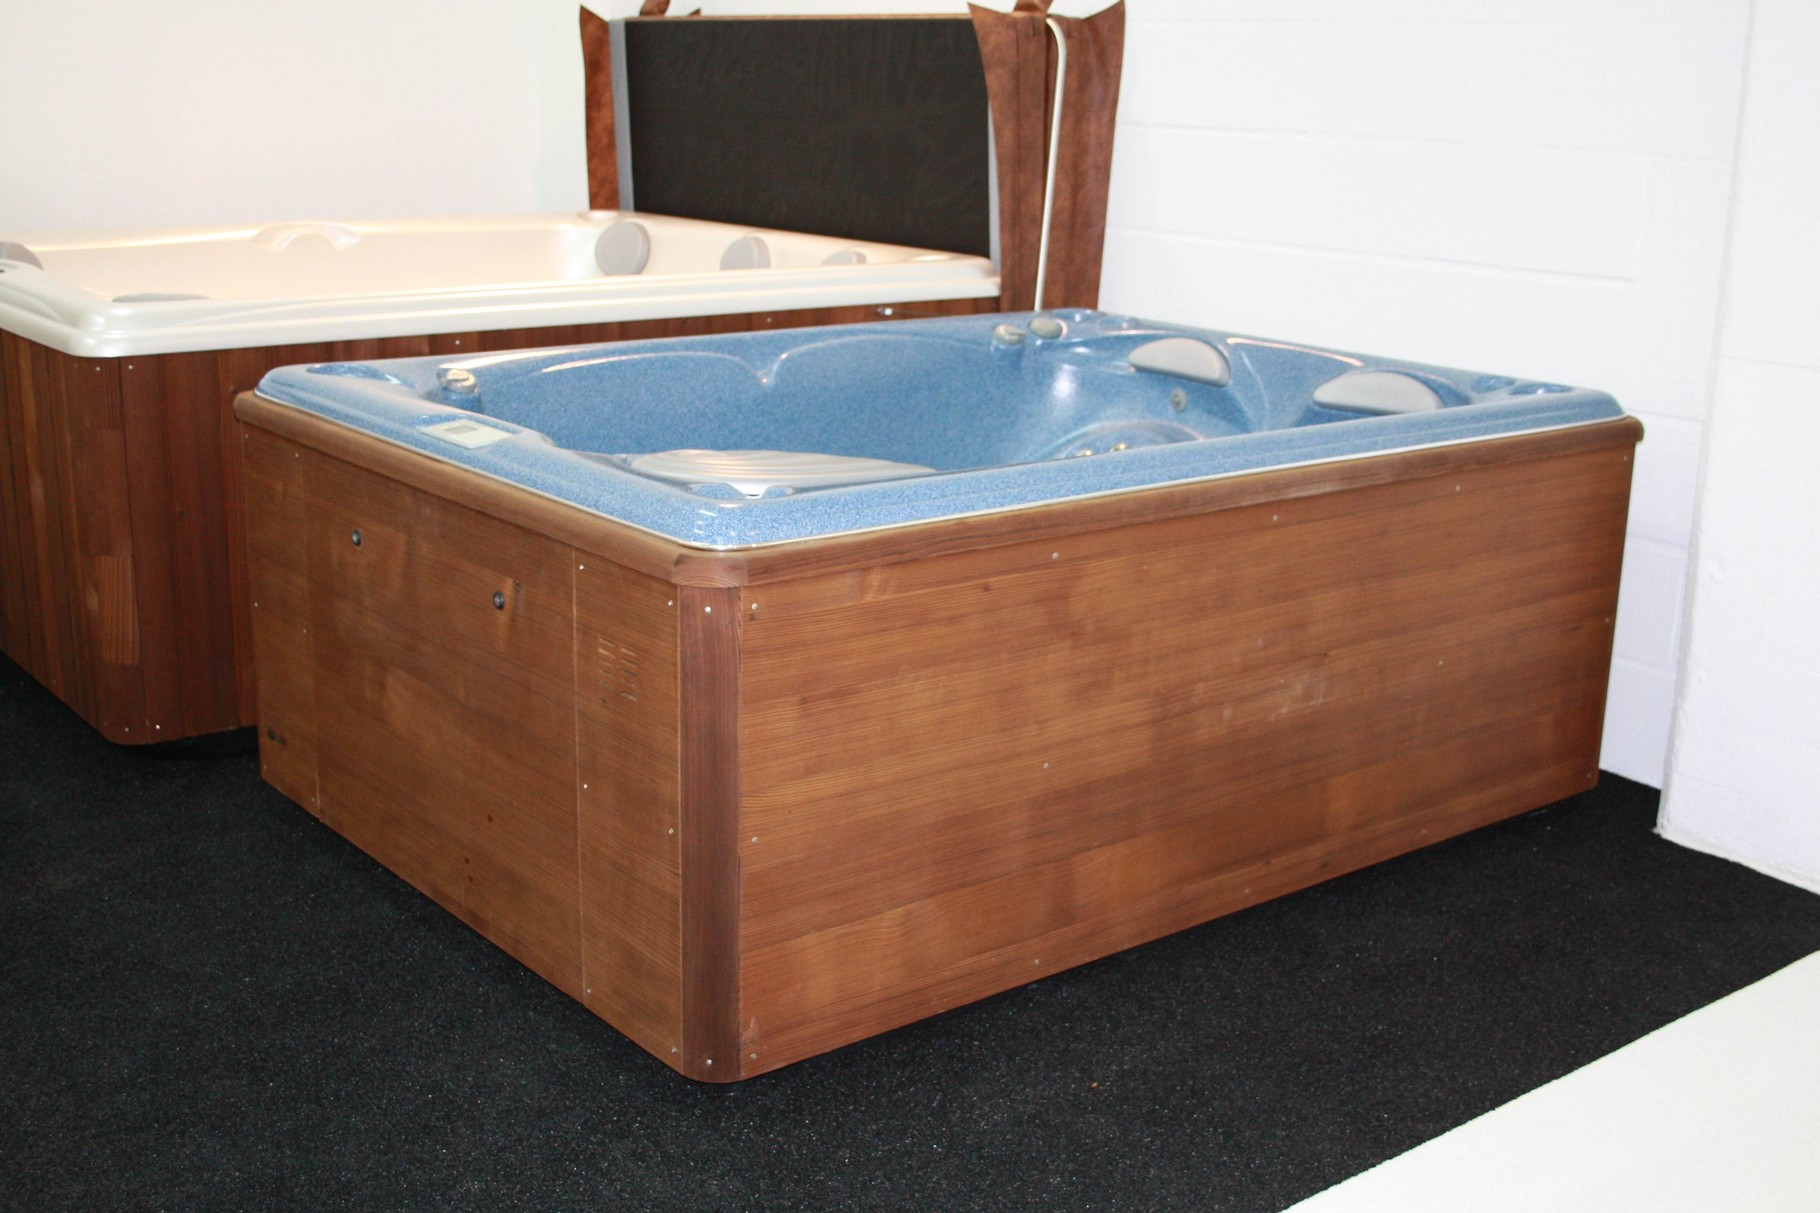 jacuzzi outdoor gebraucht jakusie whirlpool jacuzzi nova. Black Bedroom Furniture Sets. Home Design Ideas